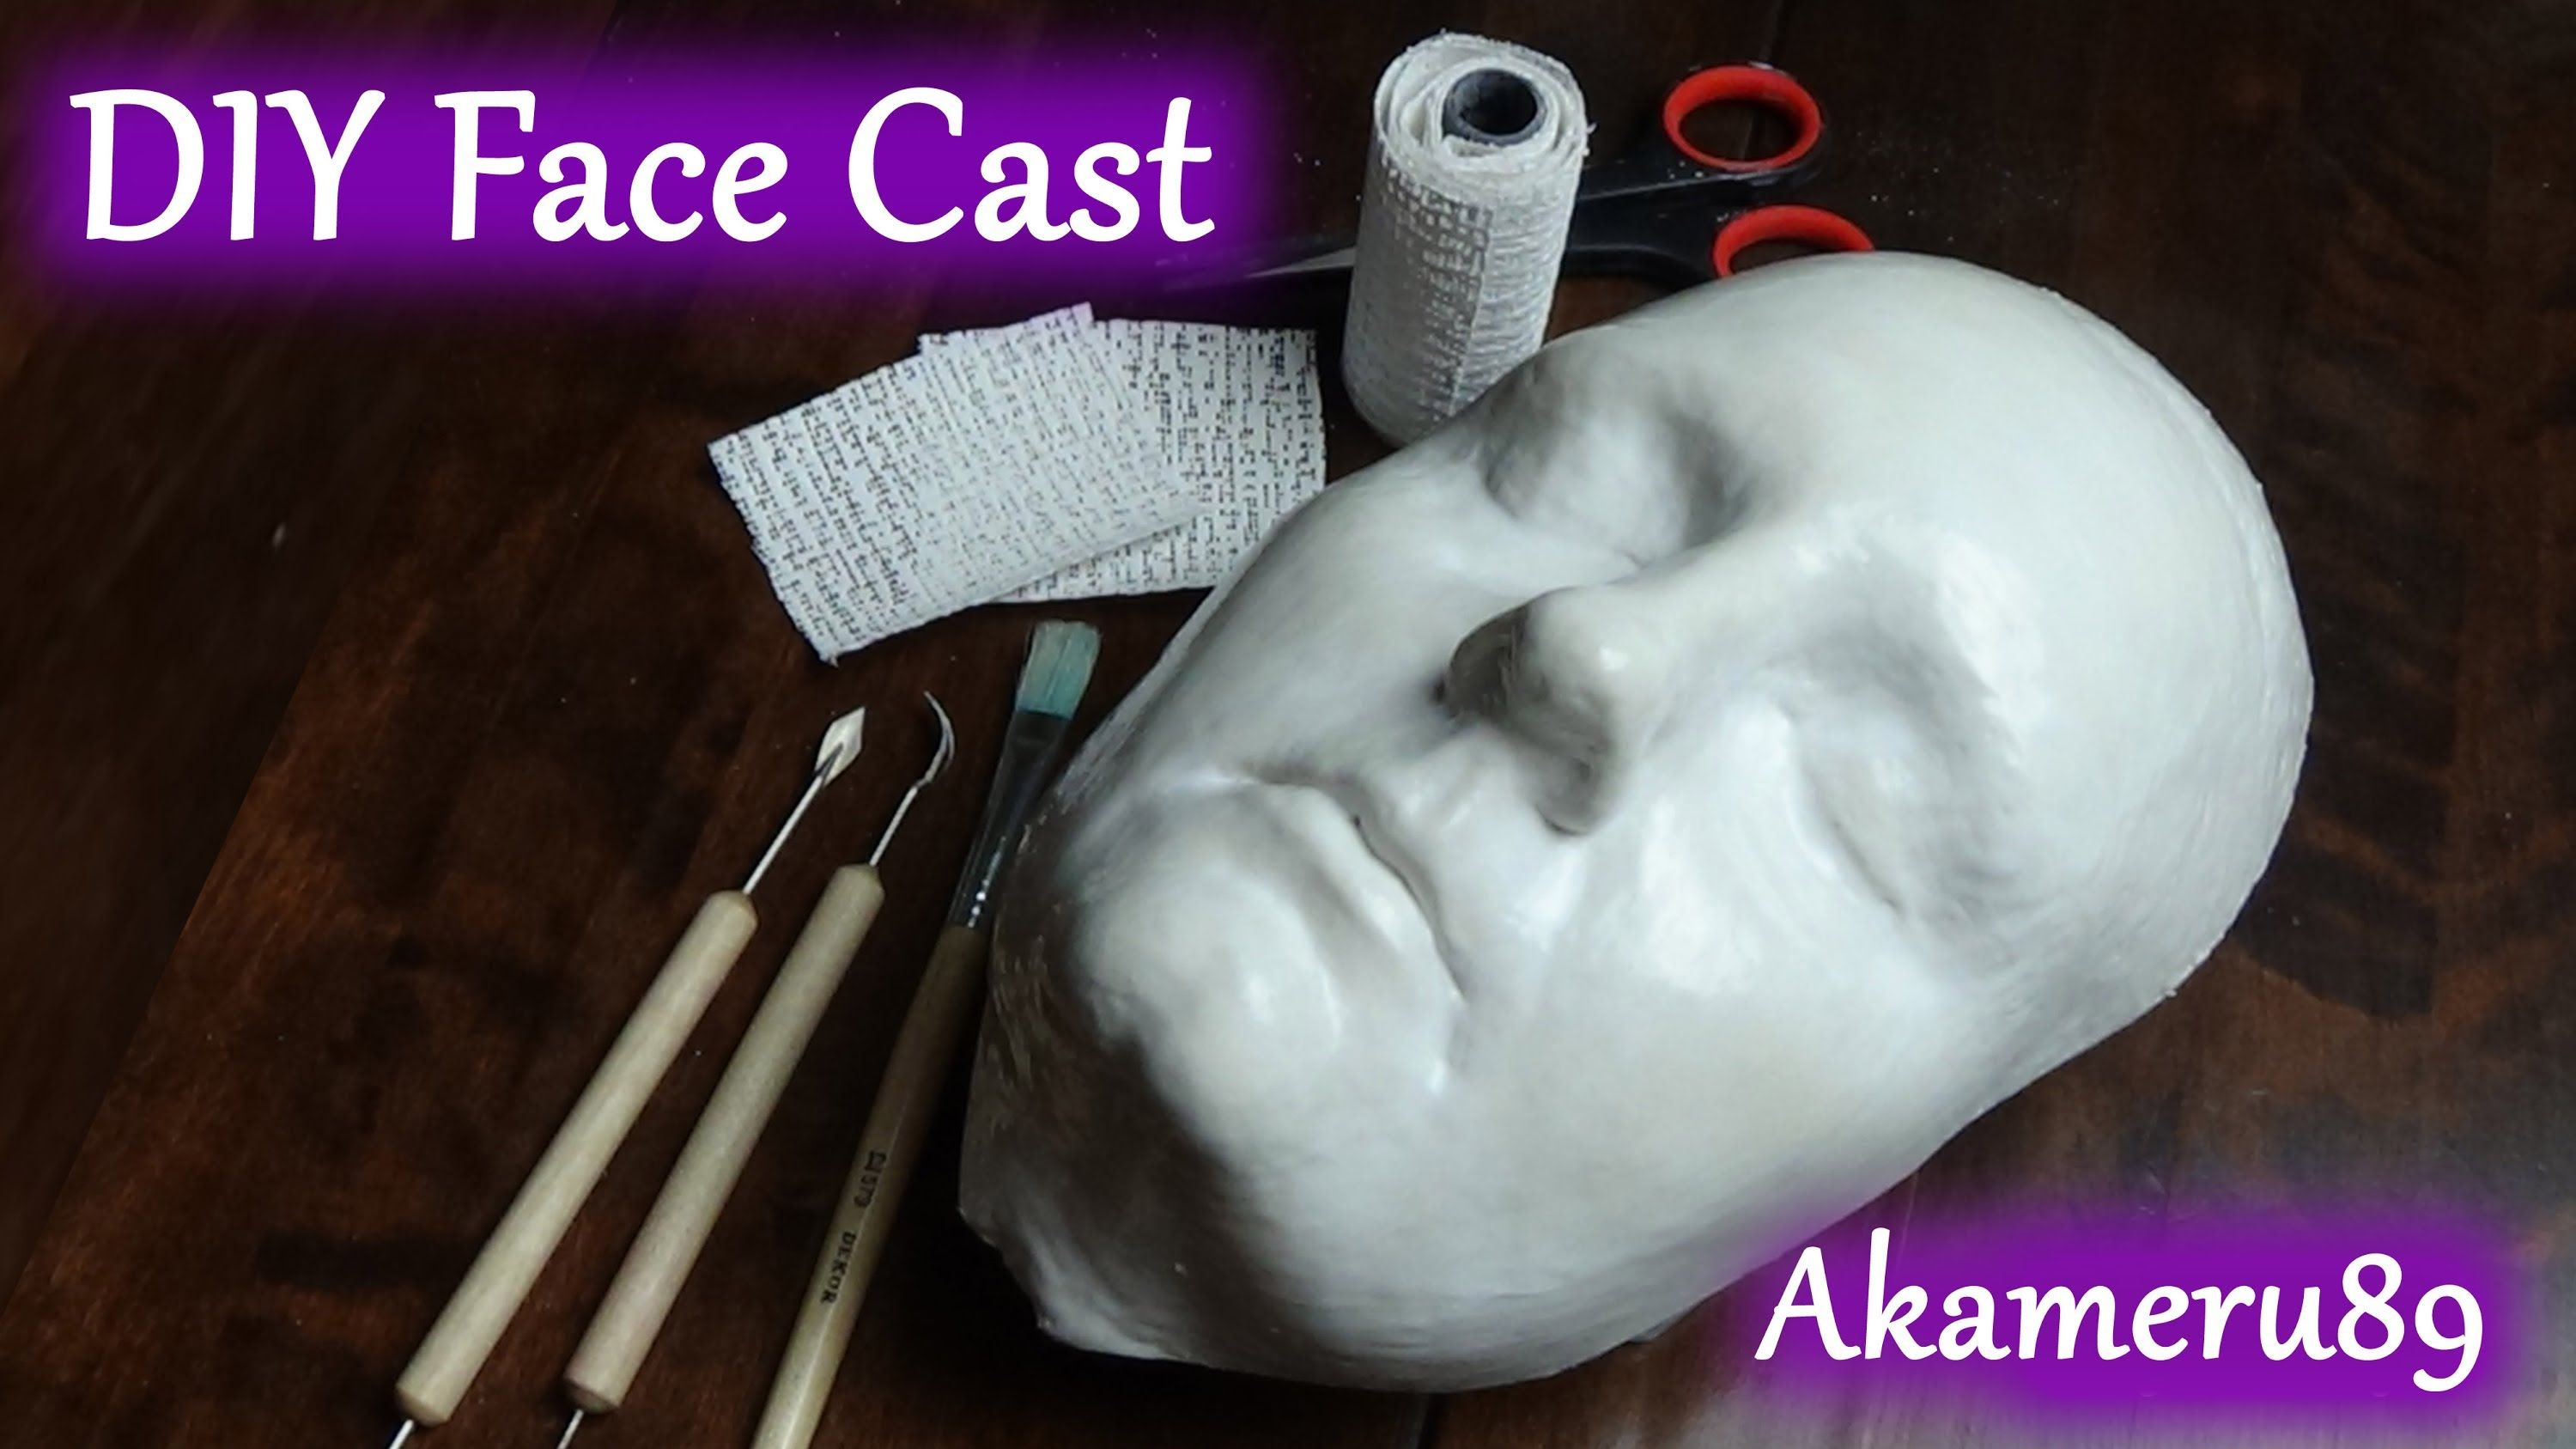 Hi Guys! I wanted a face cast to masks and such on an